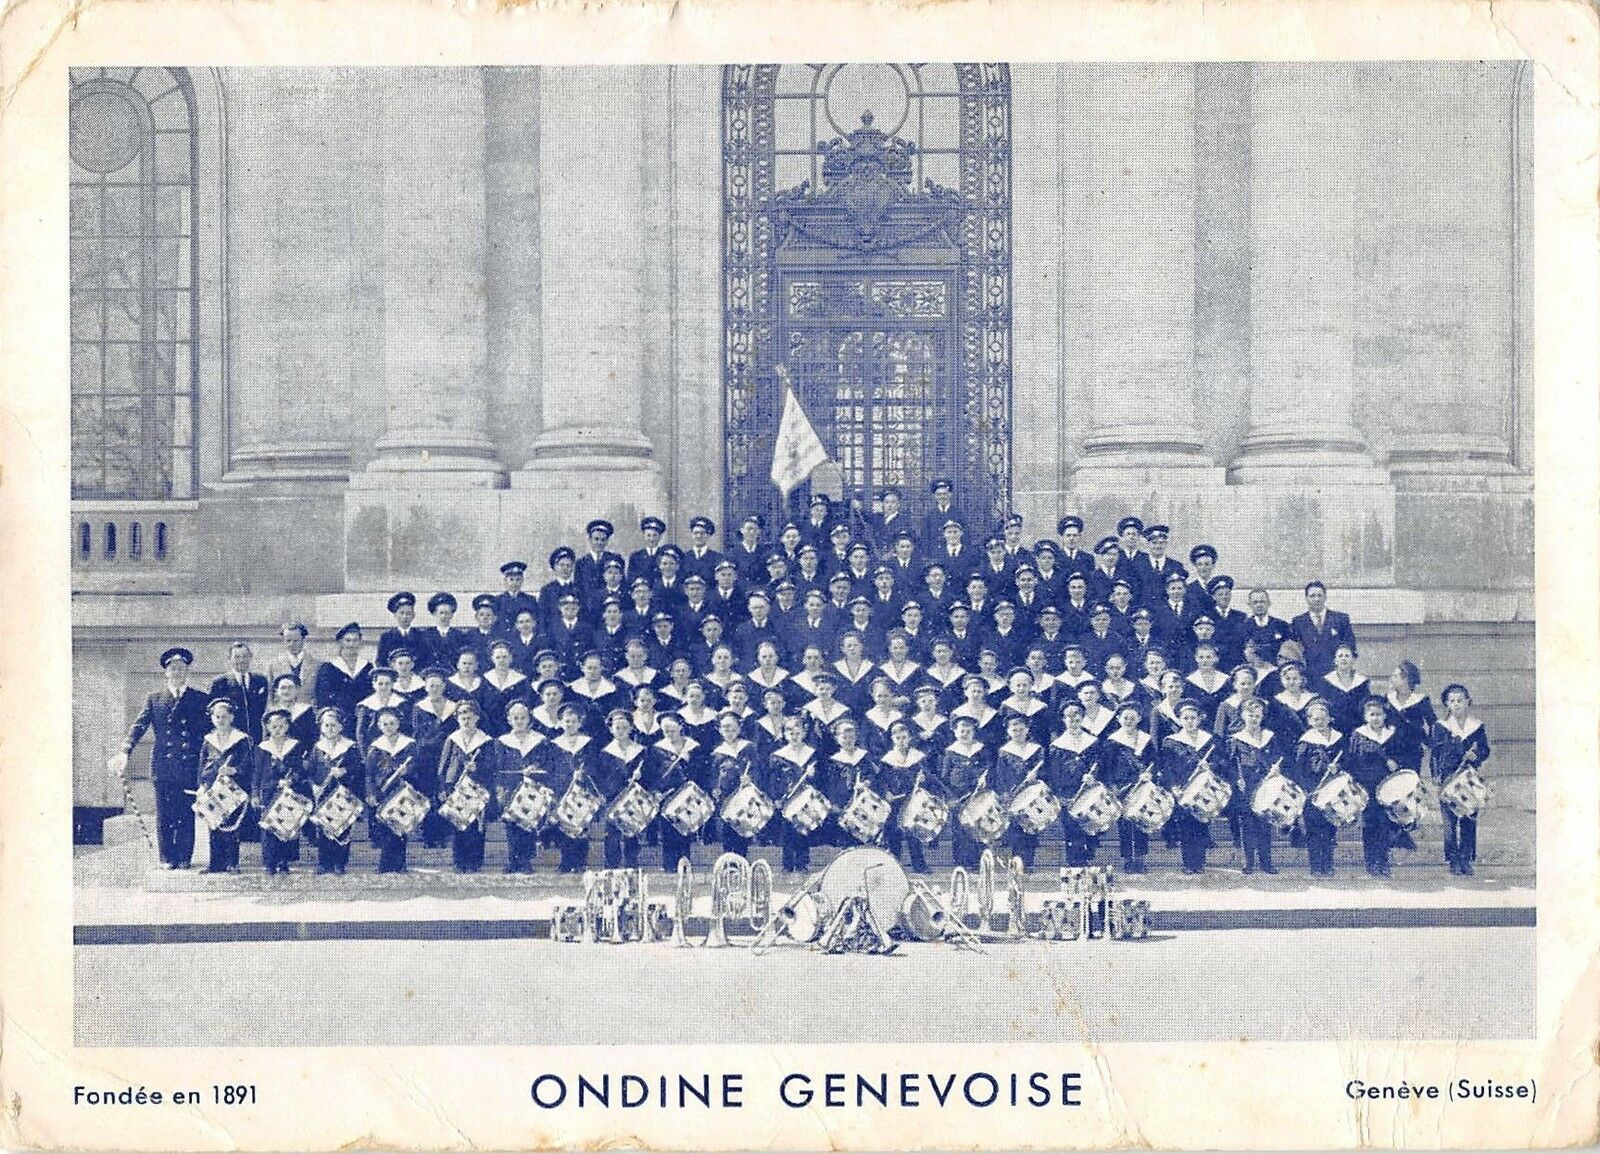 BT15270 Ondine Genevoise geneve            Switzerland